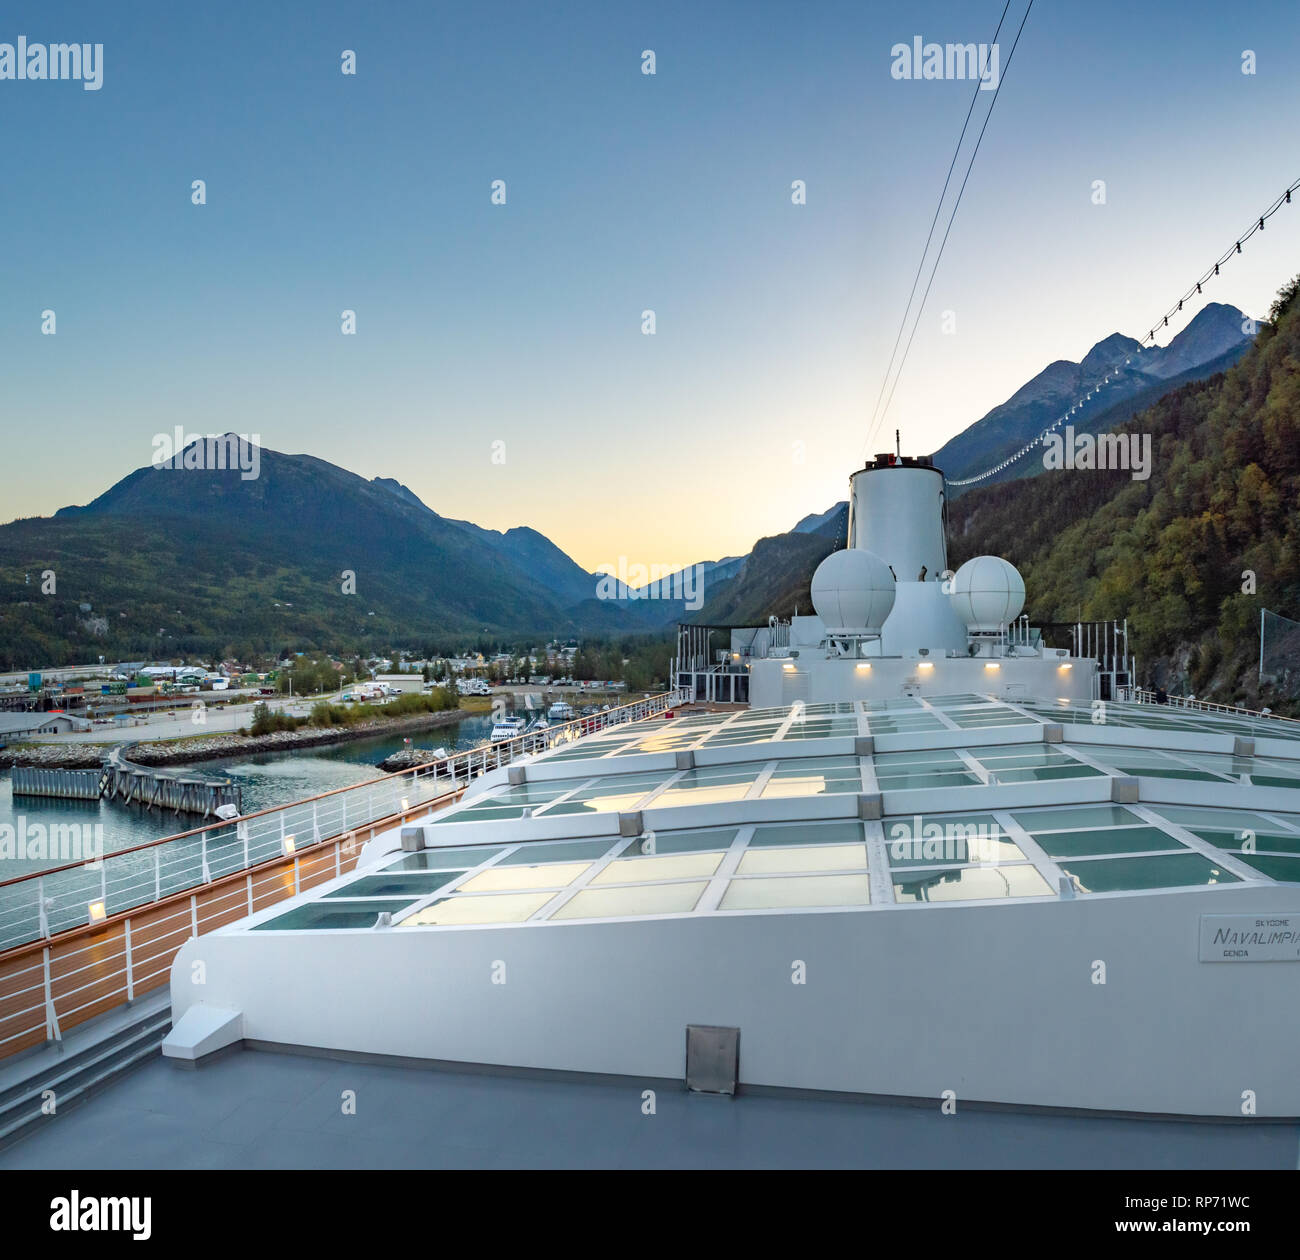 September 15, 2018 - Skagway, AK: Sports deck and closed Magrodome of Holland America's The Volendam, while docking at the Port of Skagway. - Stock Image